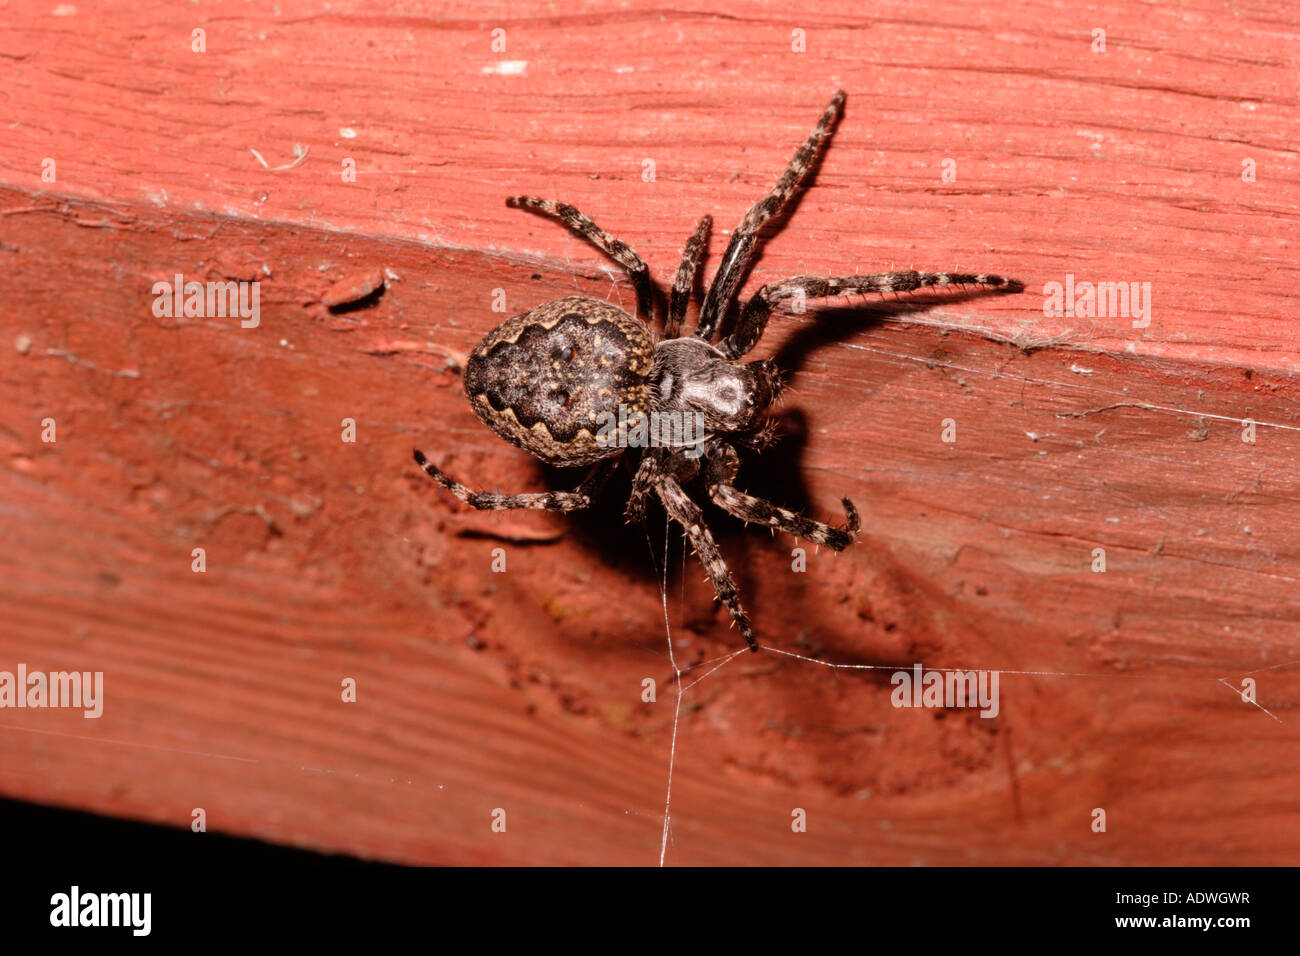 Walnut orb weaver spider Nuctenea umbratica Araneidae in touch with her web in a greenhouse at night UK - Stock Image